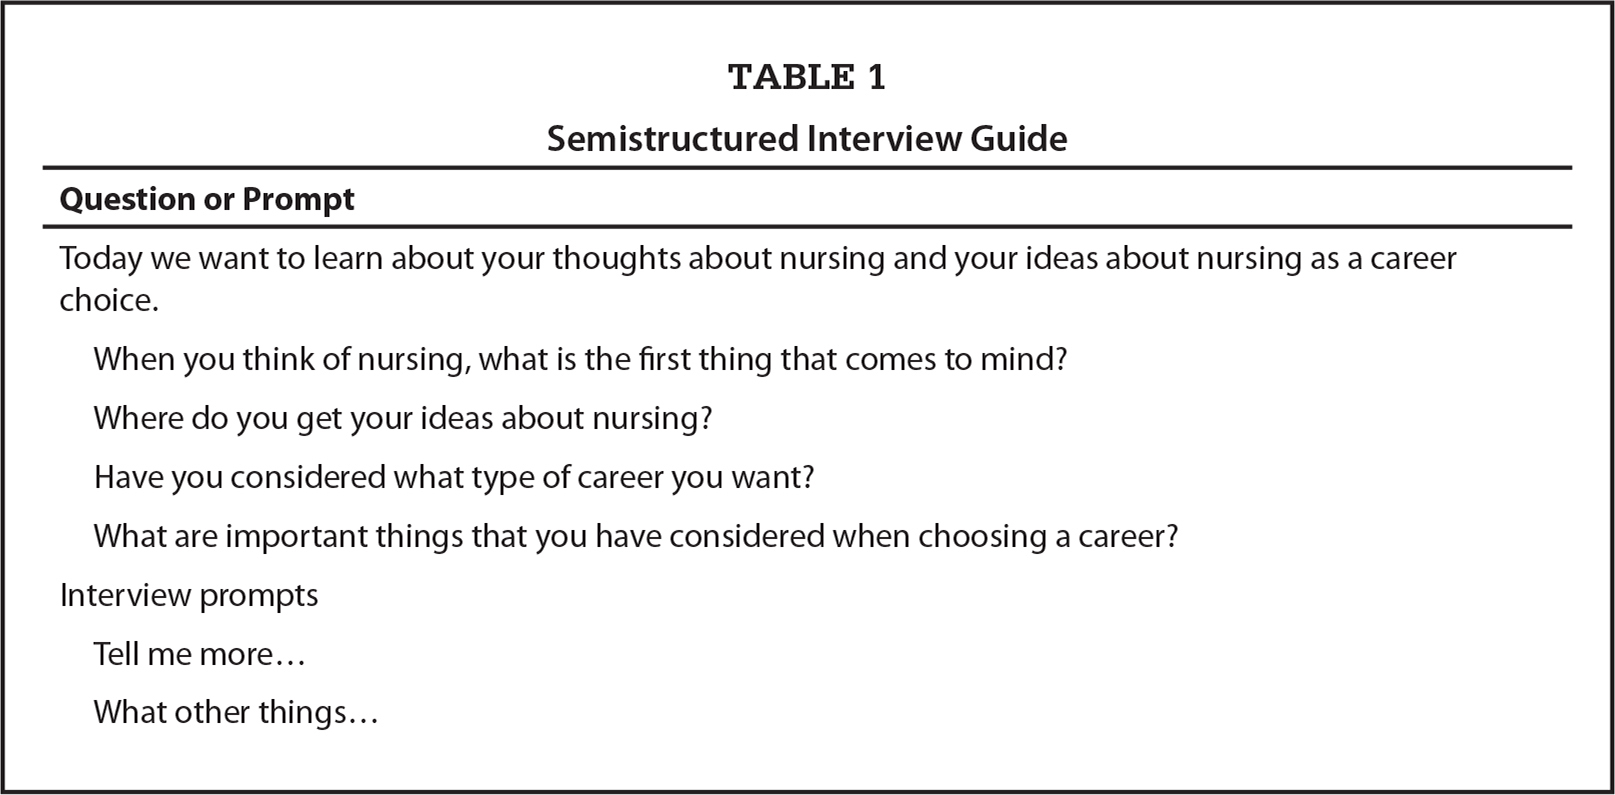 Semistructured Interview Guide